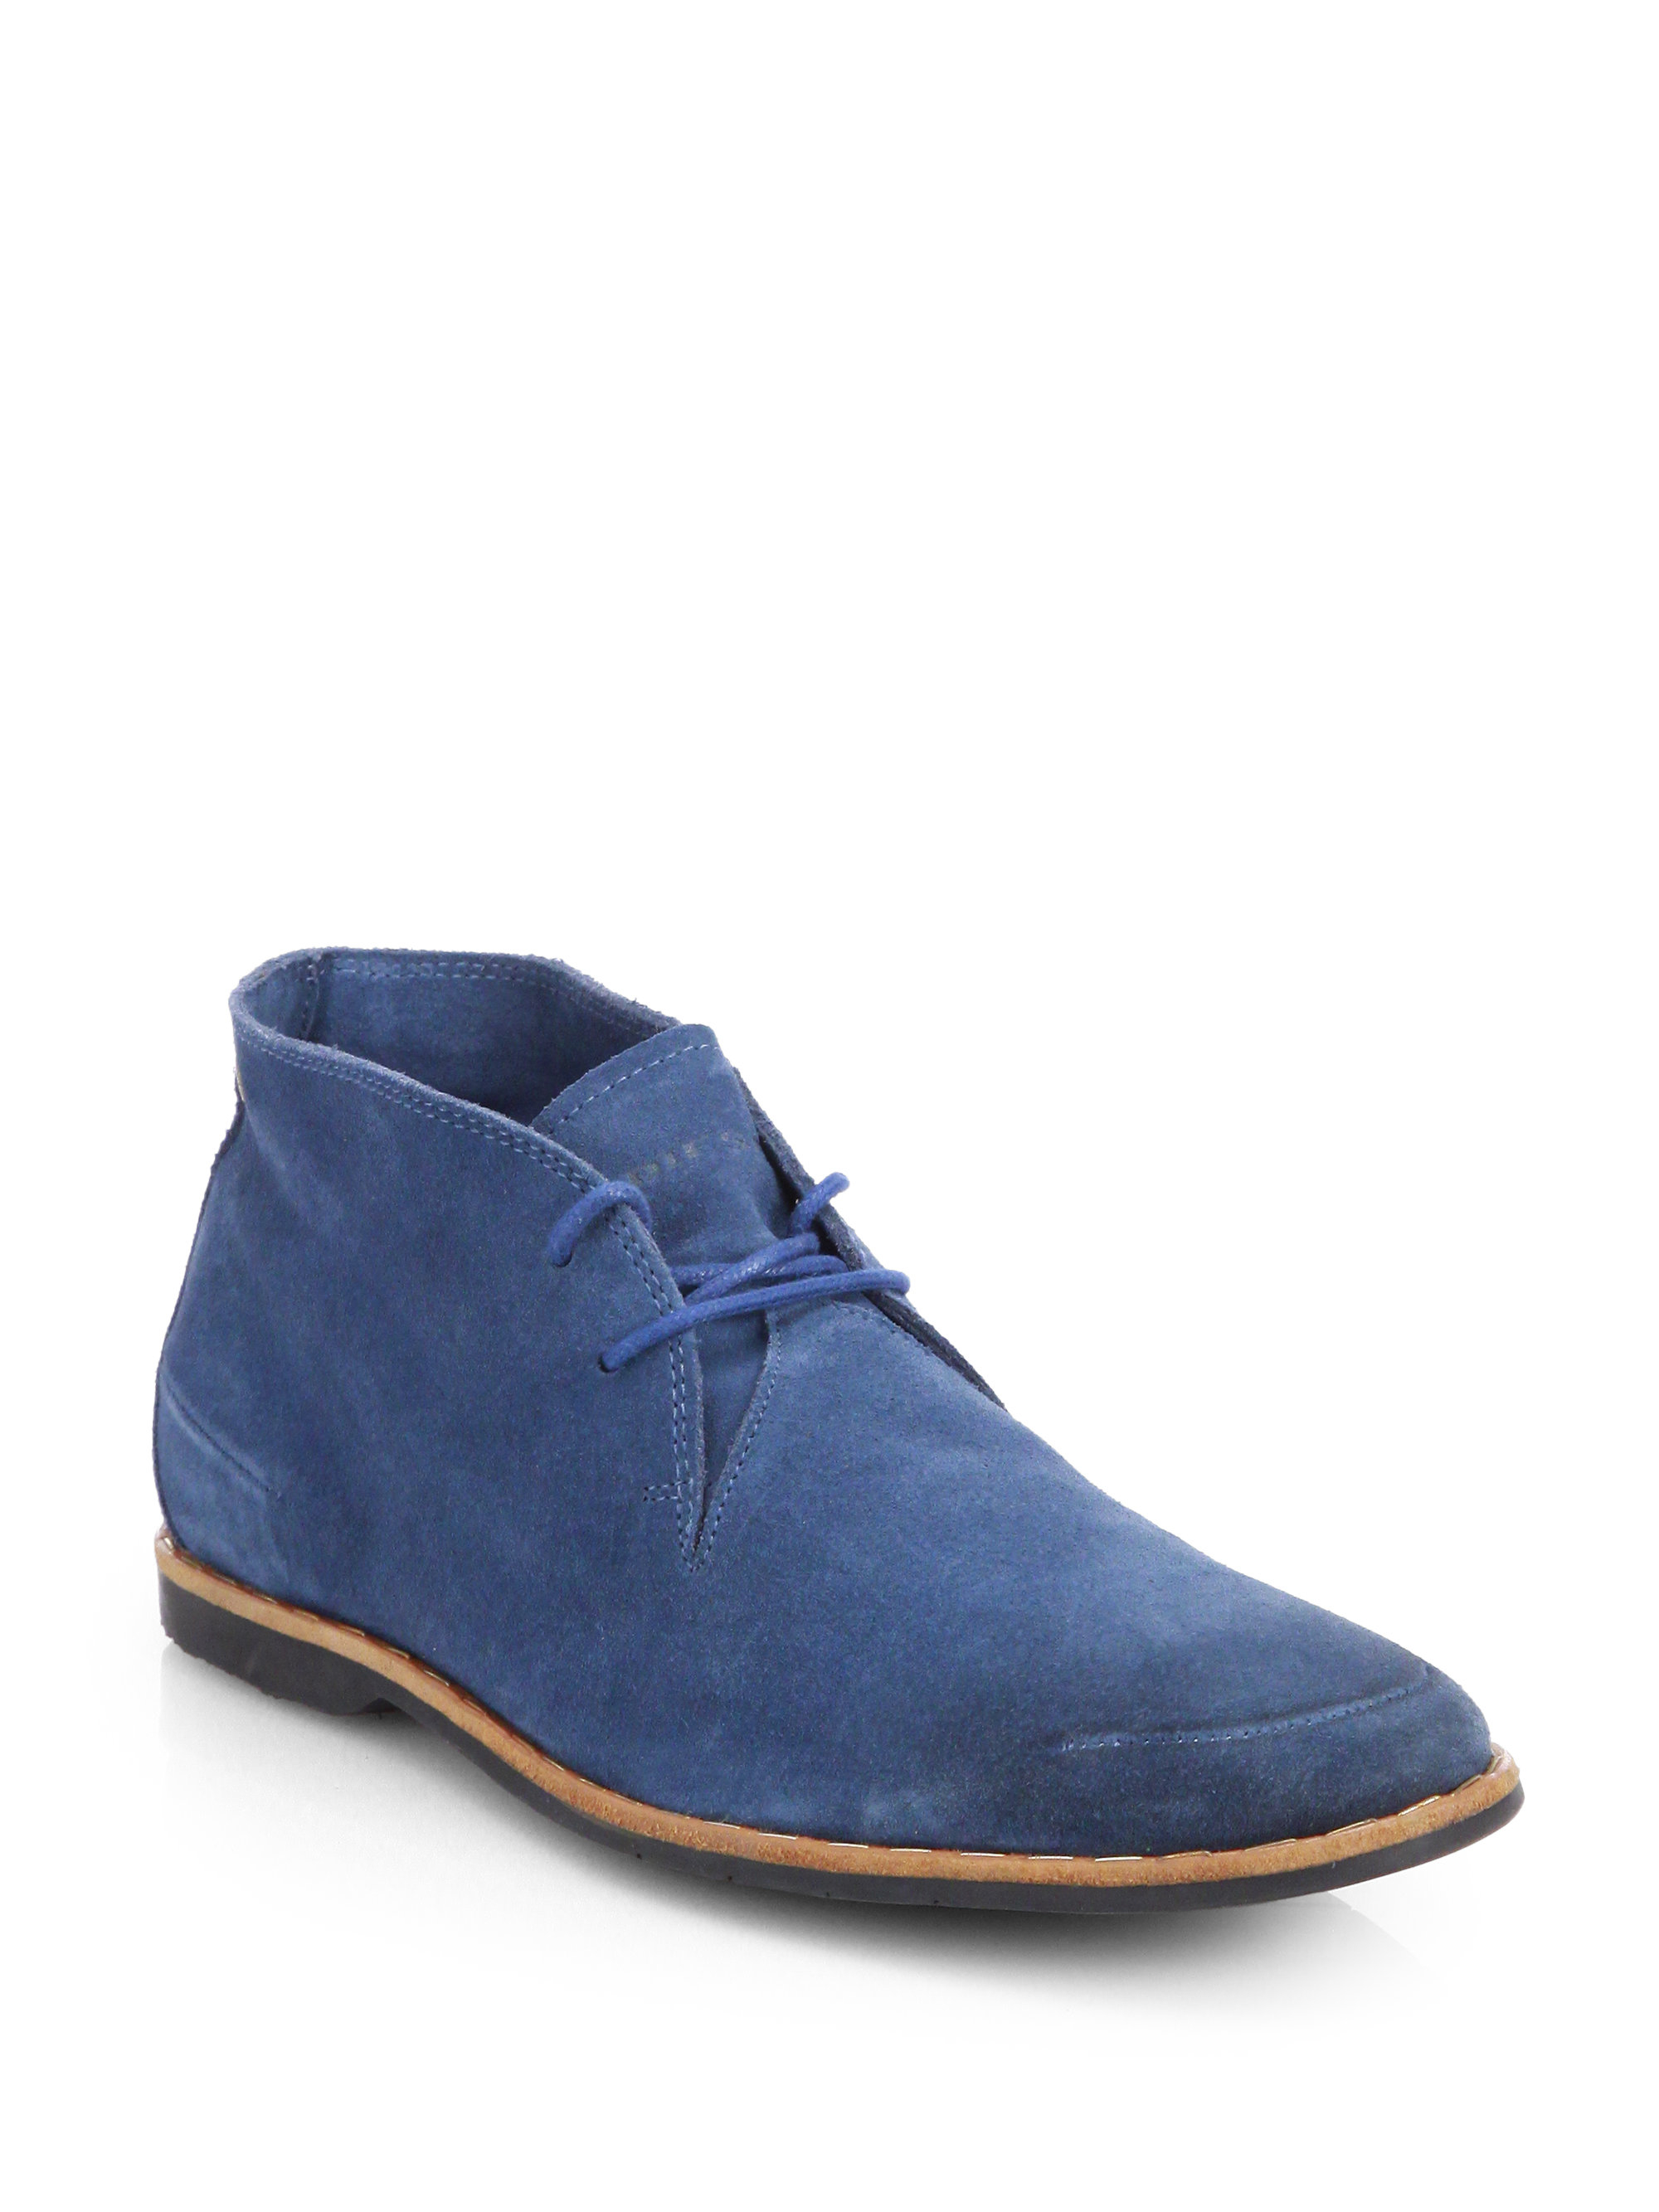 Lyst Diesel Lawless Suede Chukka Boots In Blue For Men